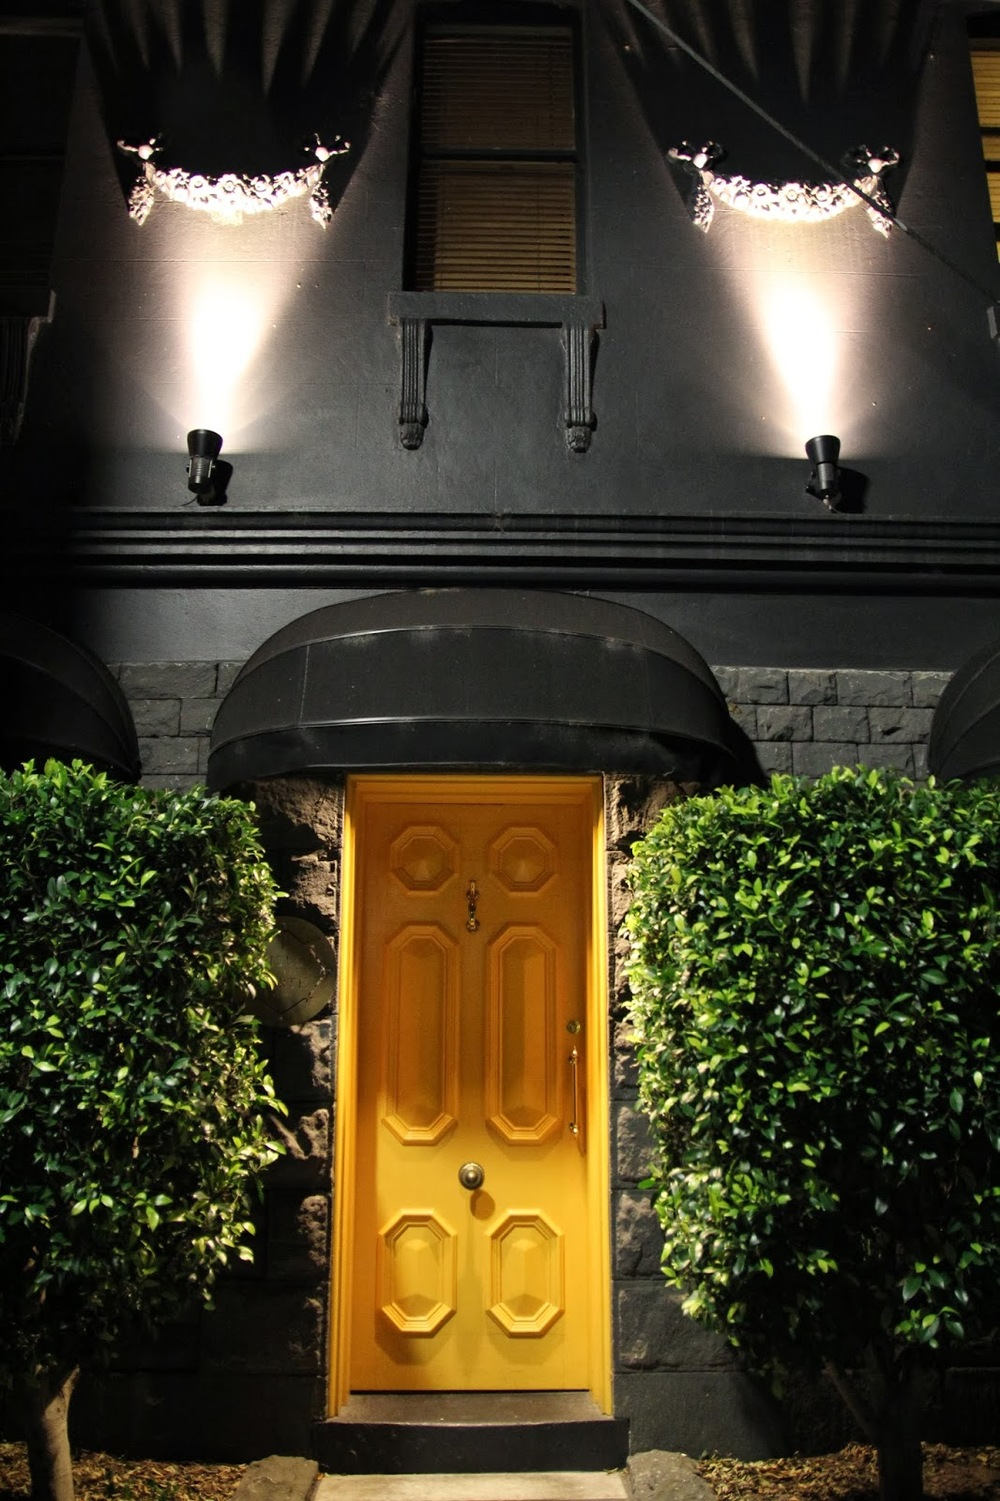 A building at night with a yellow door